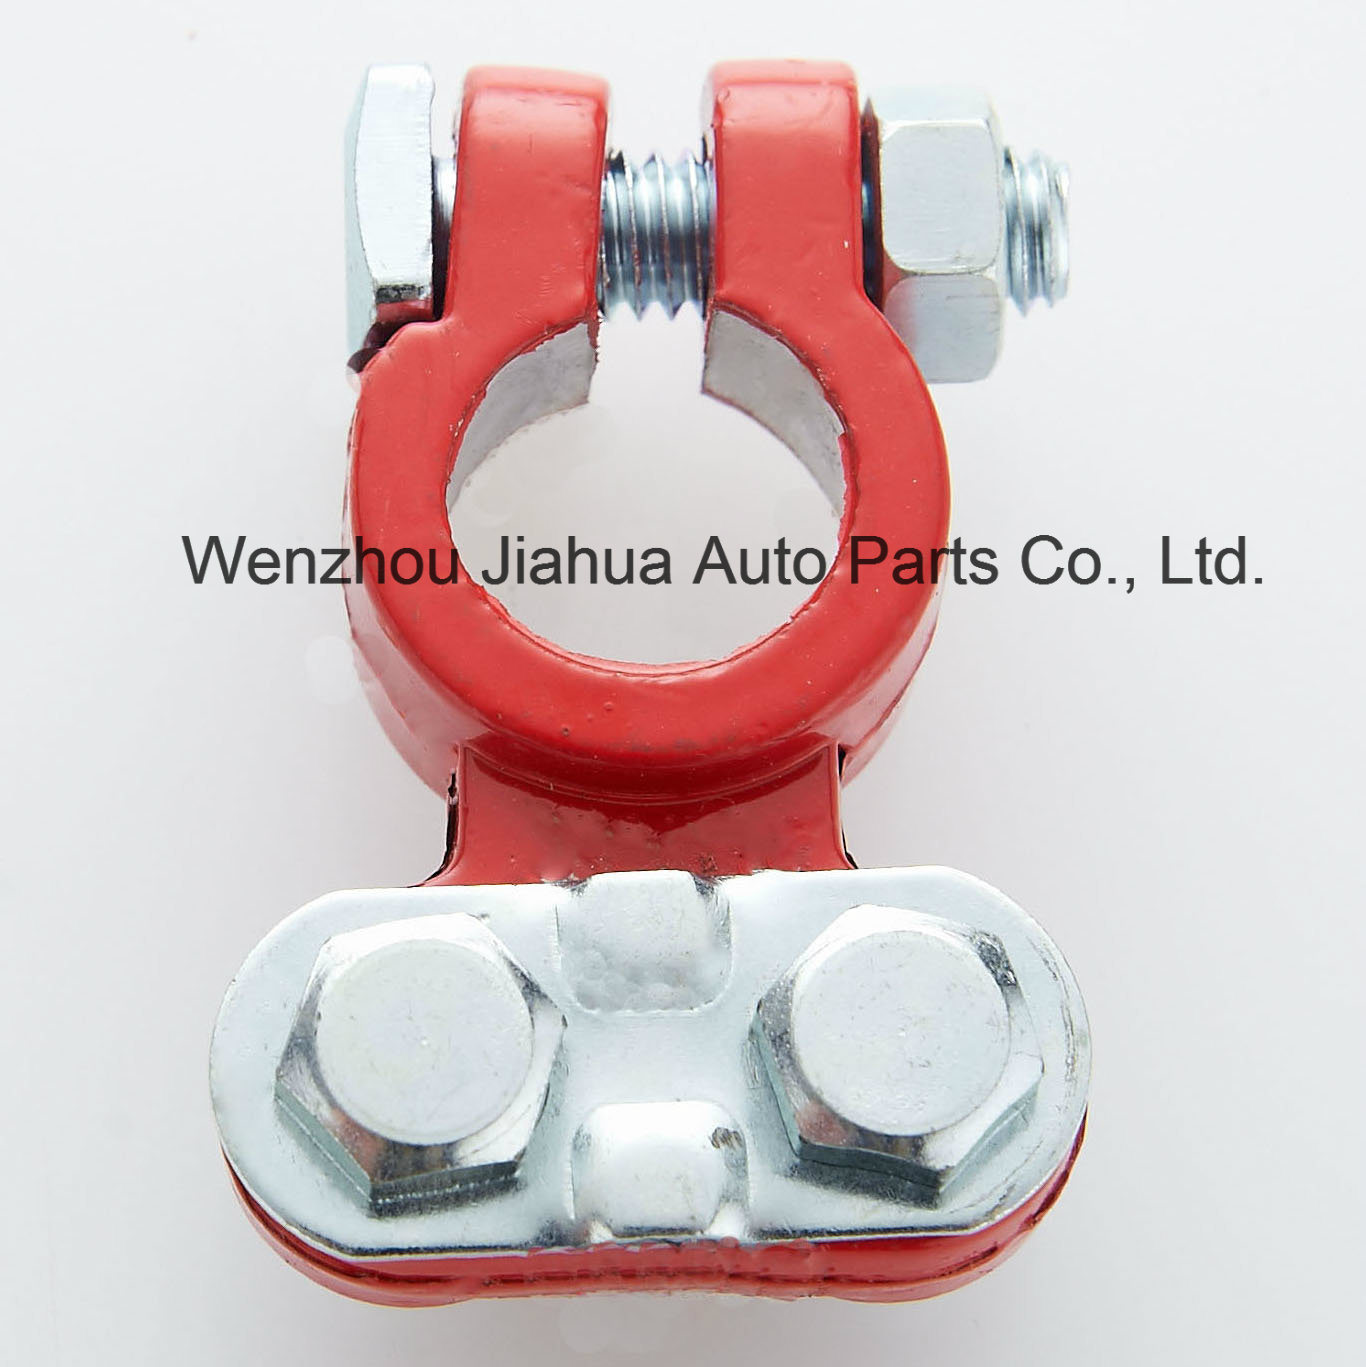 Battery Terminal Wires | China Lead Battery Terminal Car Truck Use Terminal Connectors With